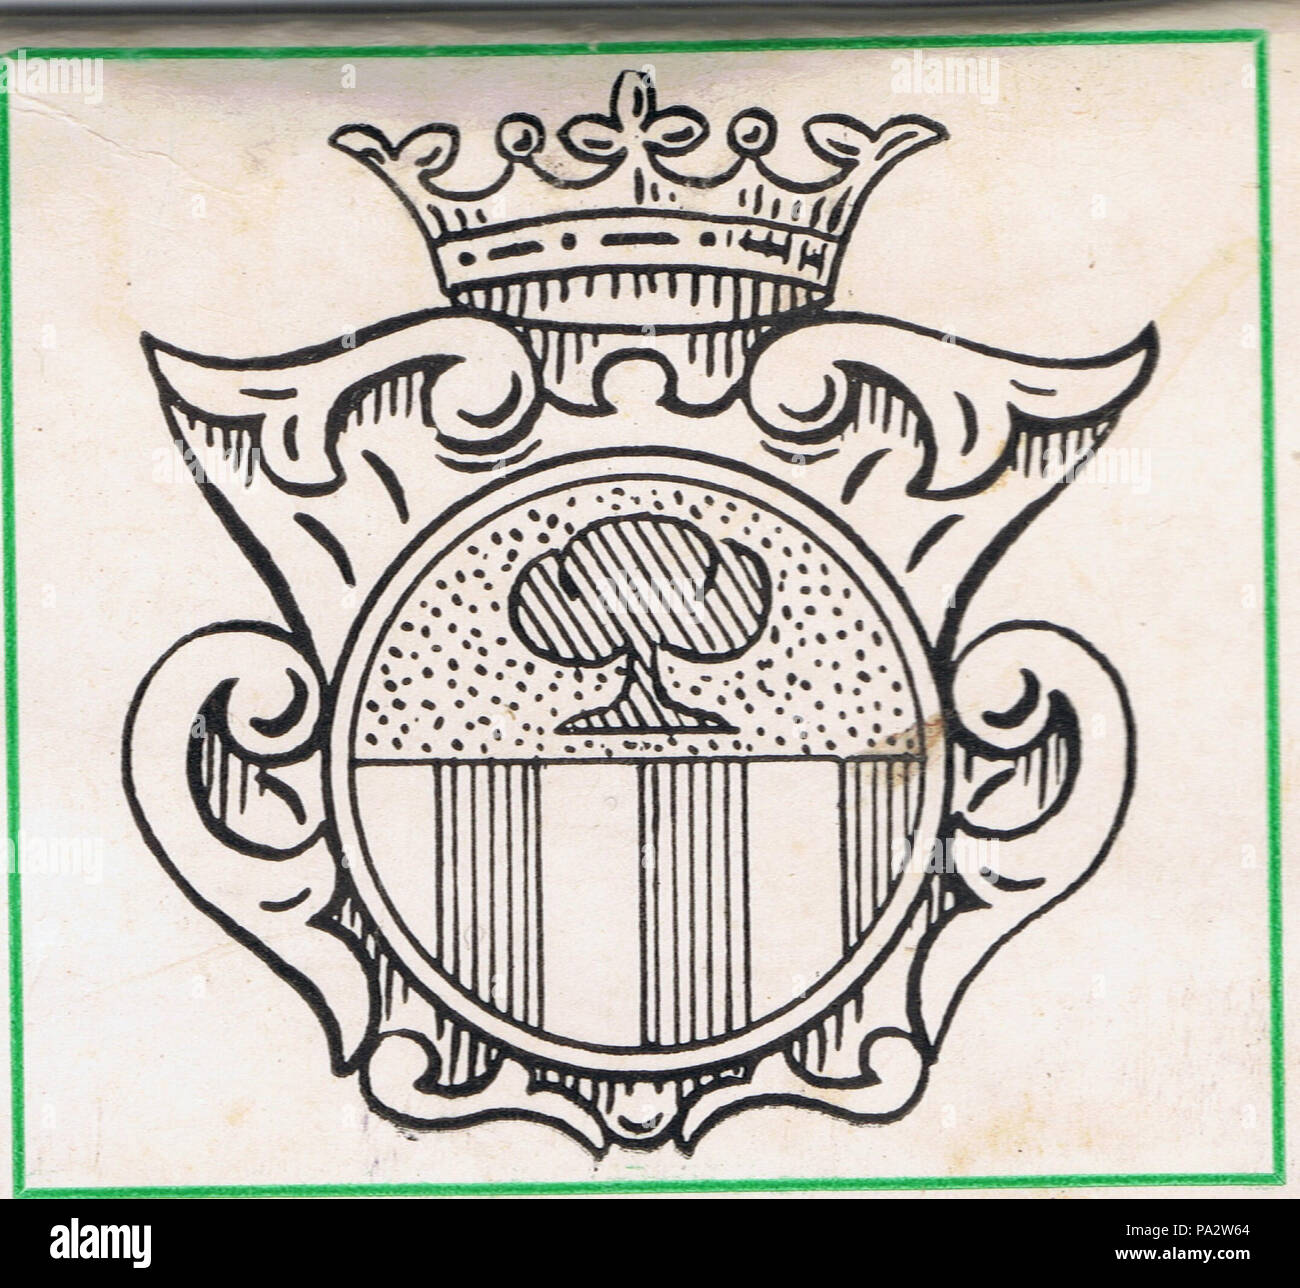 375 De Salis shield motif used as the cover of a flat matchstick pack. c. 1972 adaption of c. 1734 design - Stock Image